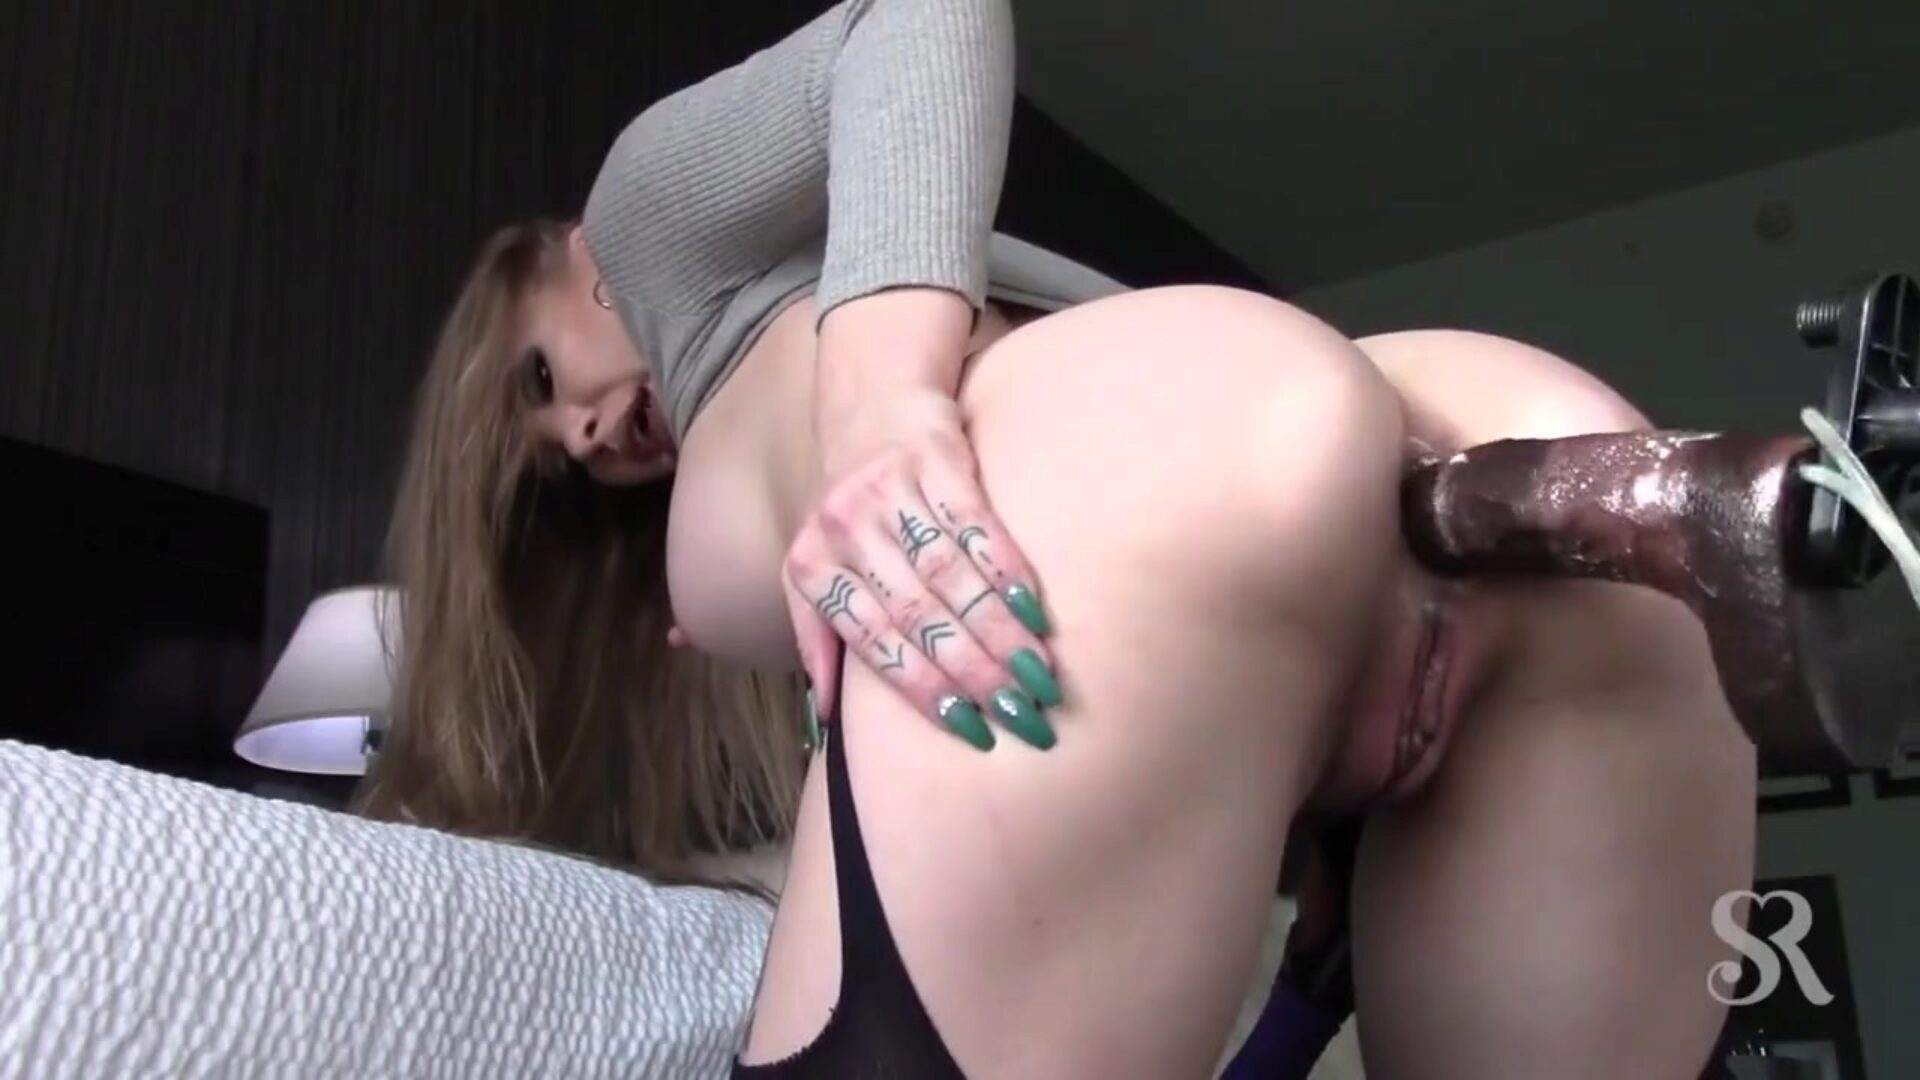 Black guy fuck fat white woman Free Videos Of Fat White Women Having Sex With Black Guys Nude Clap